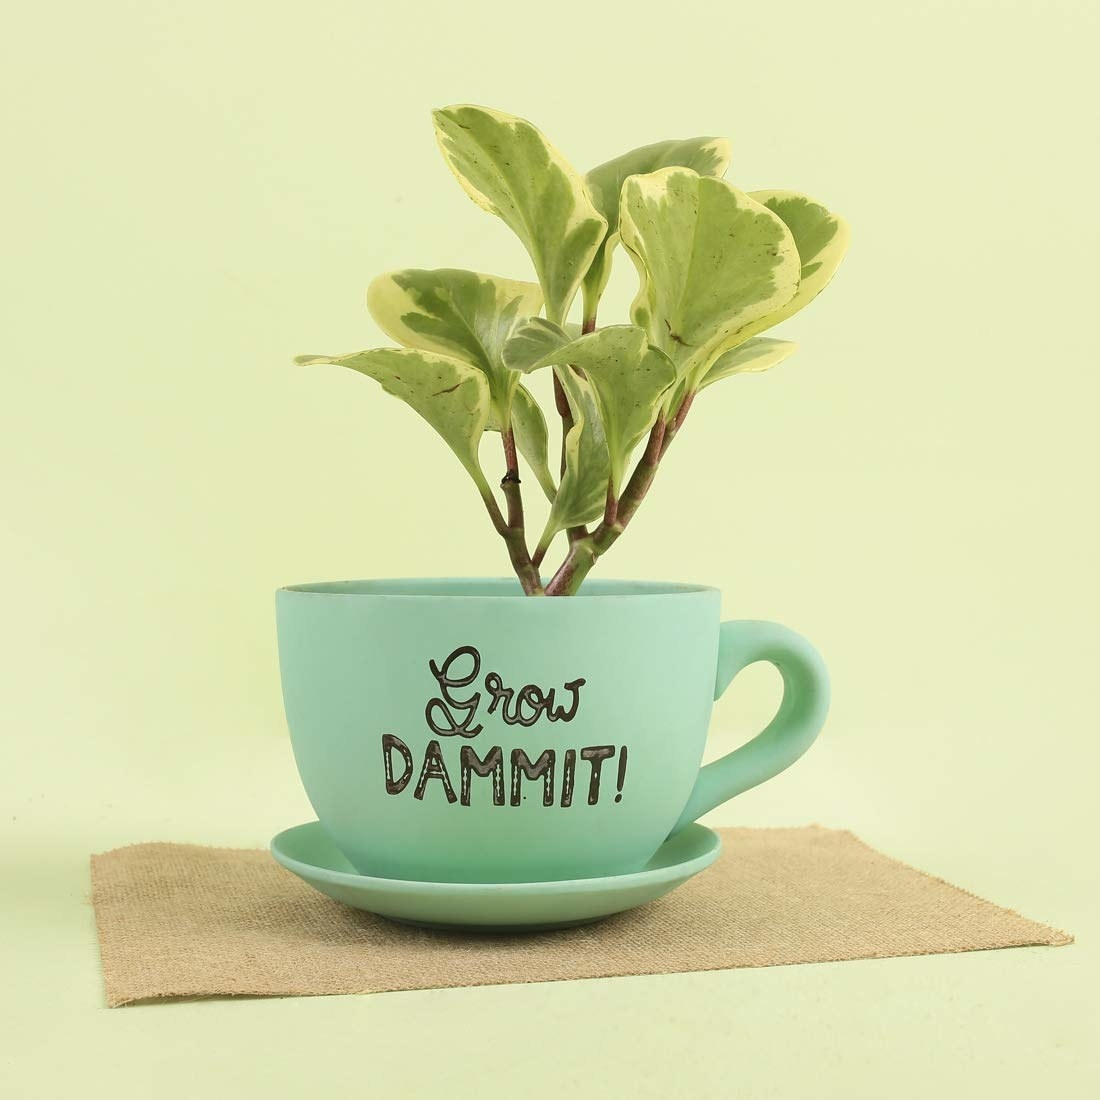 """A green planter in the shape of a mug and saucer with the words - """"Grow Dammit"""" printed on it"""